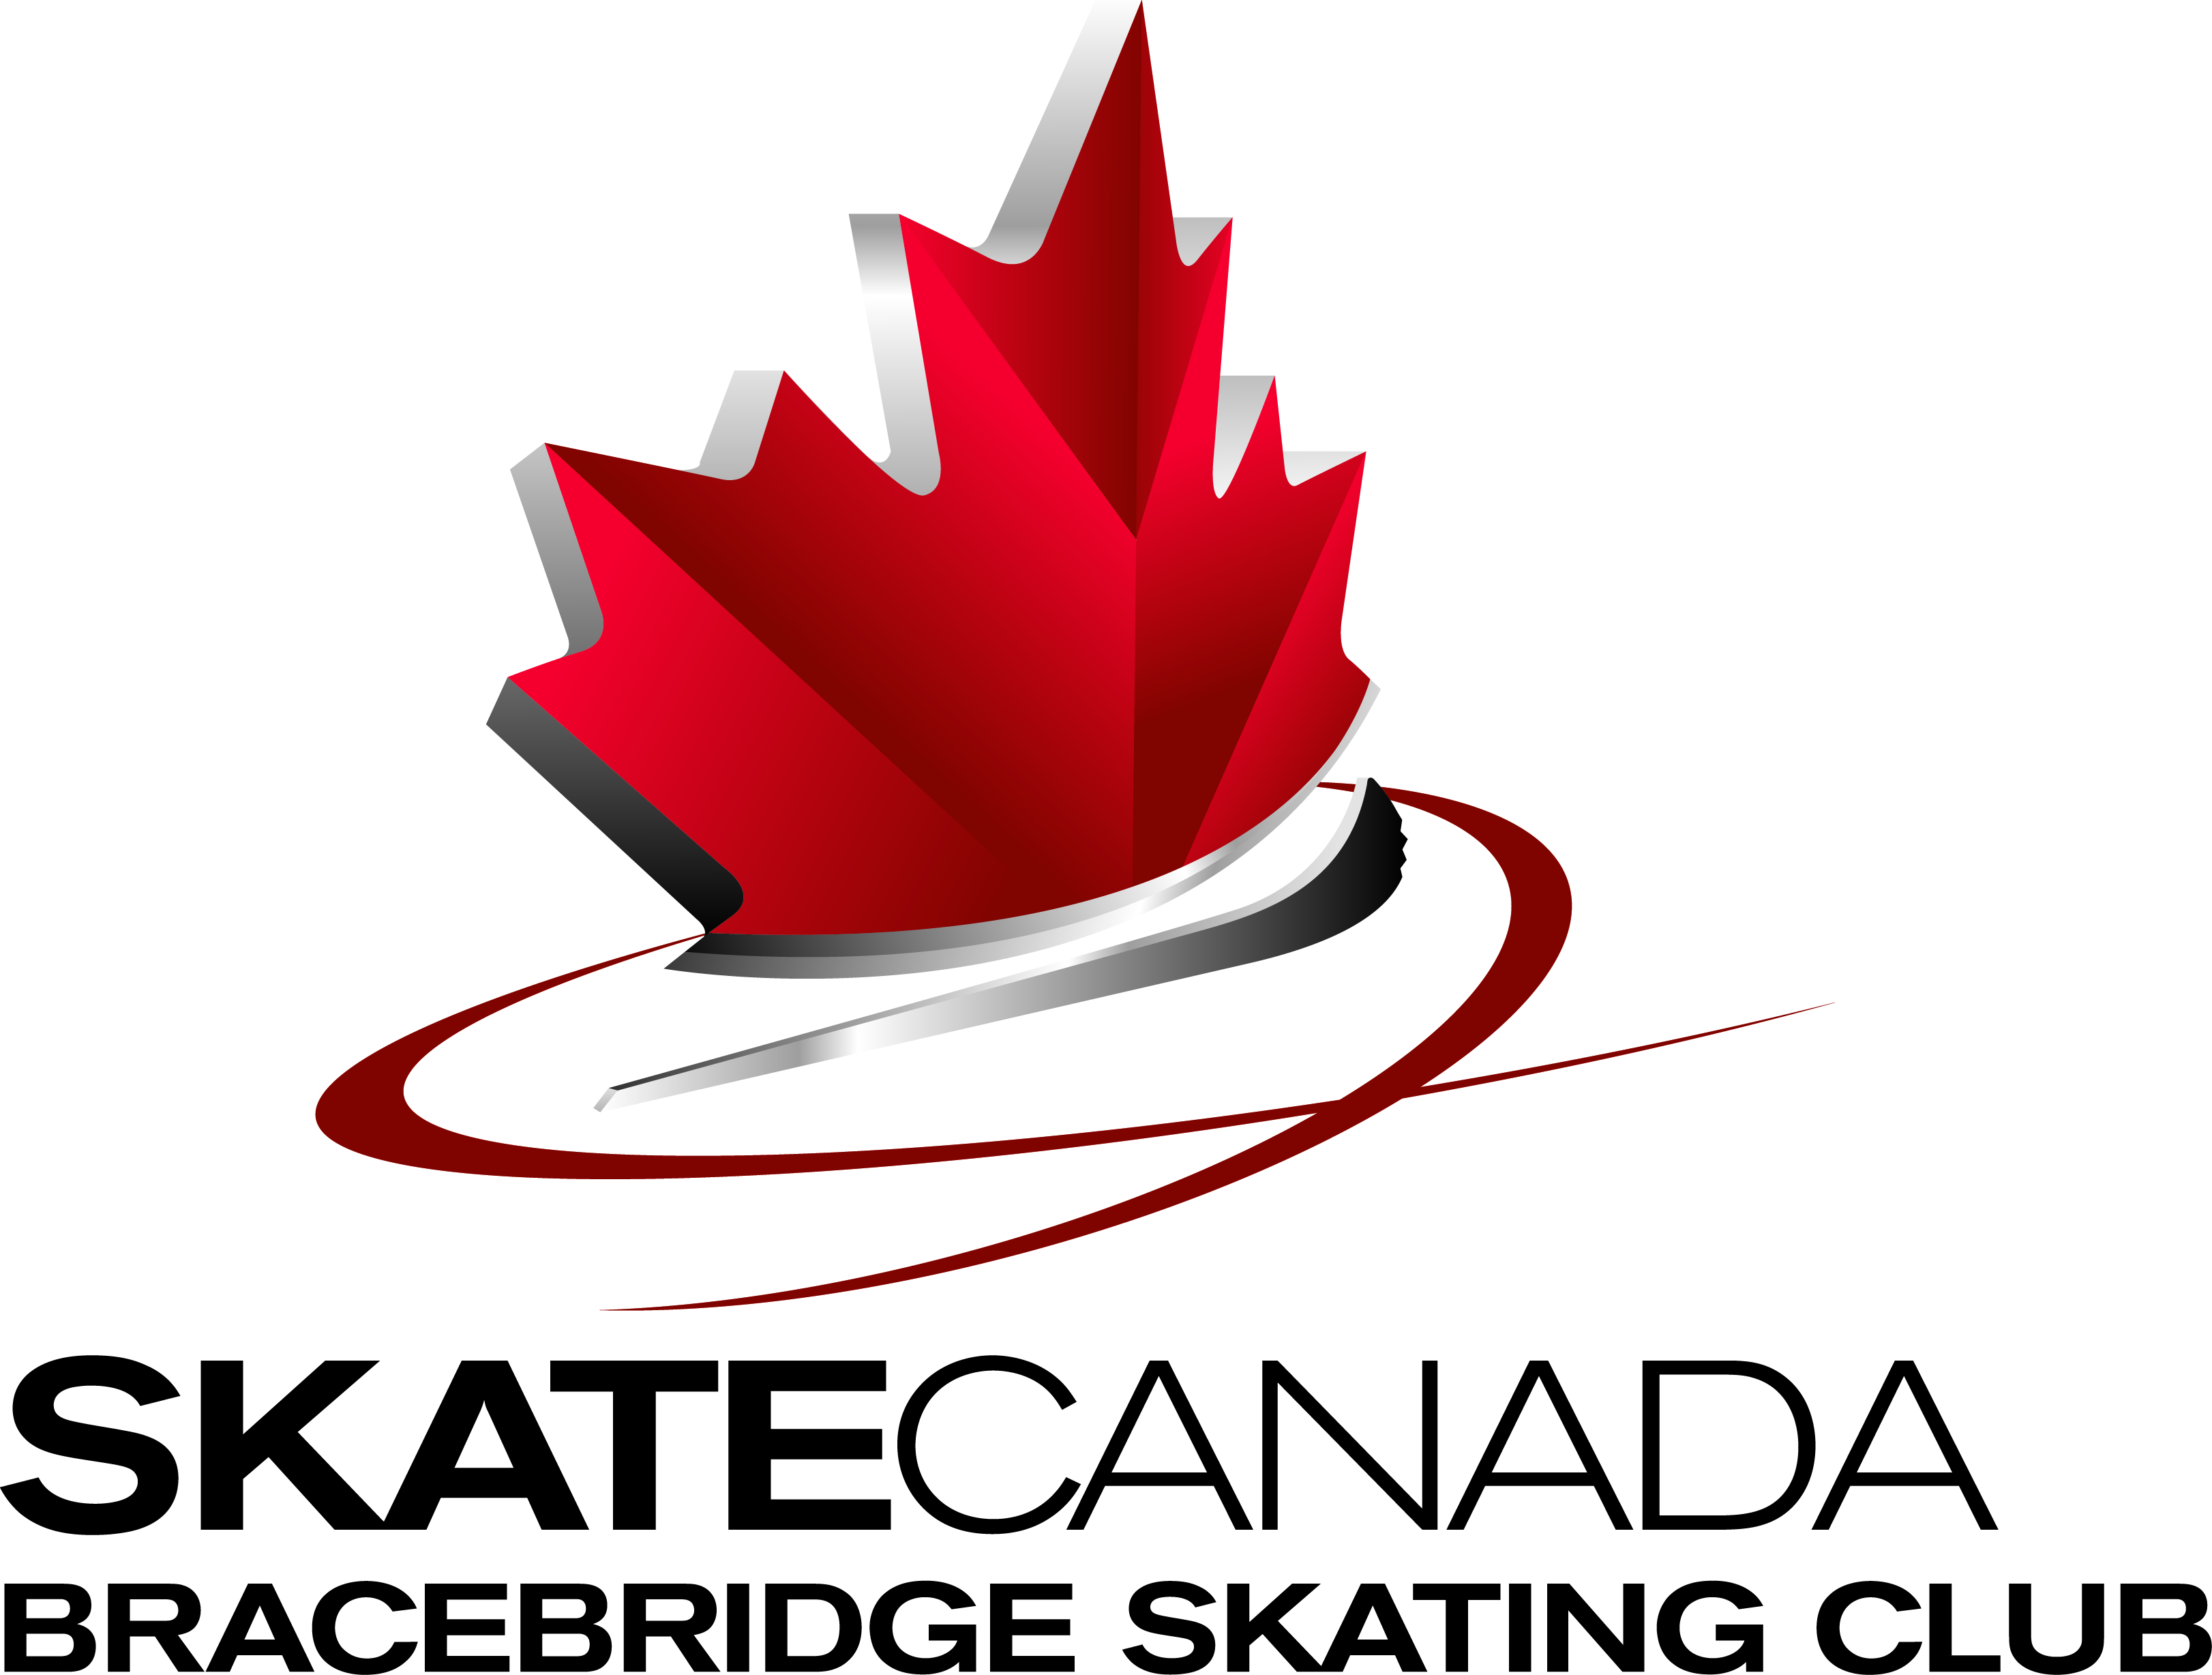 Bracebridge Skating Club